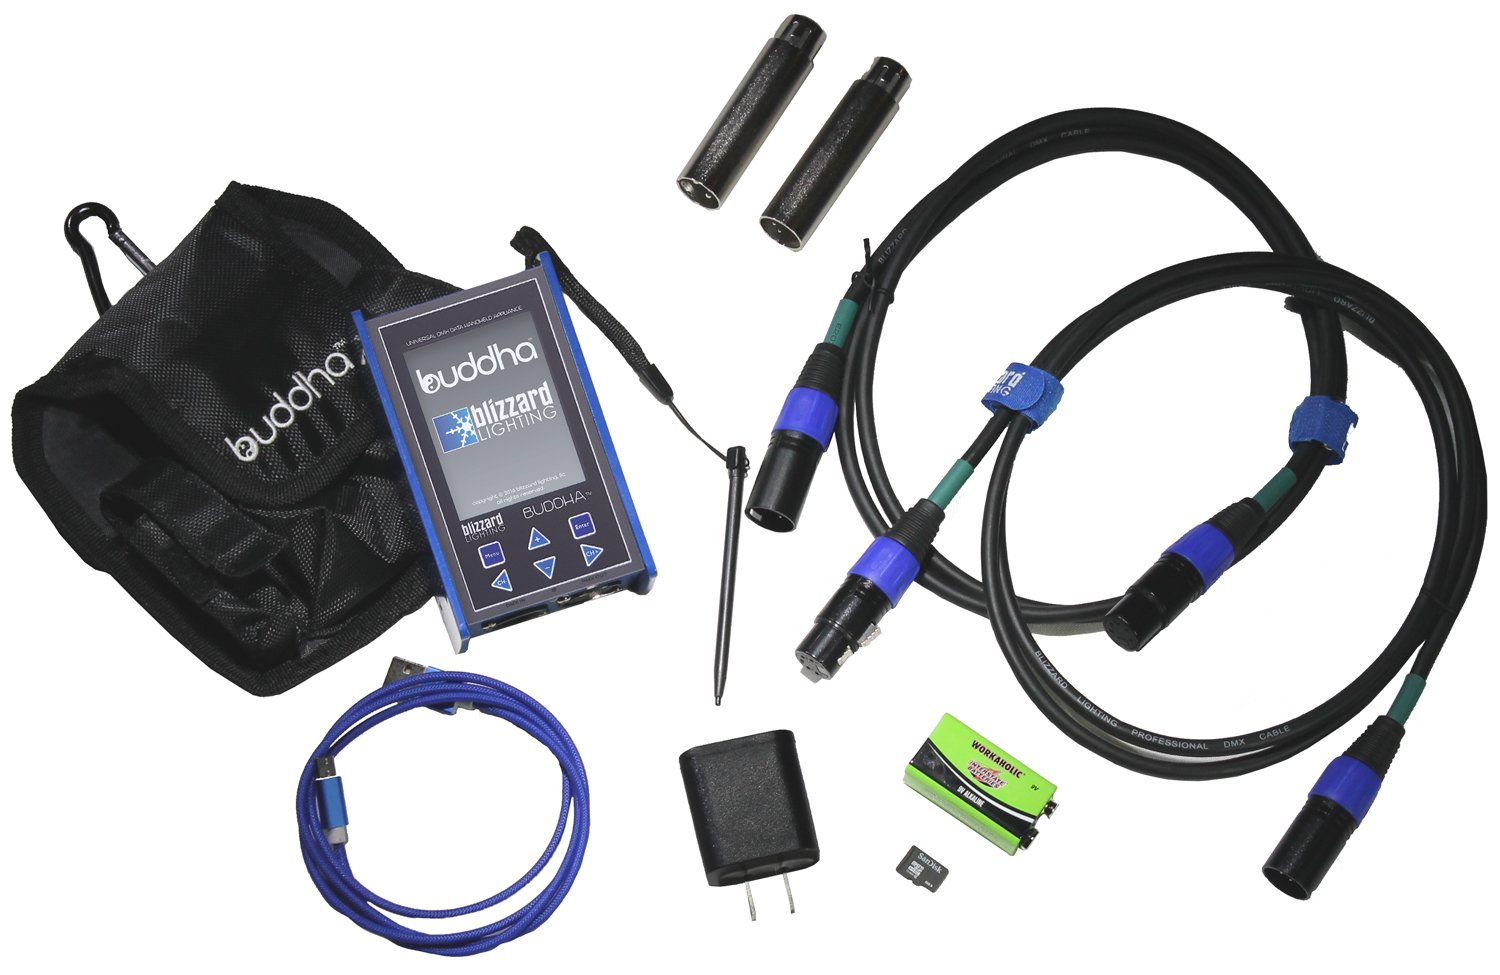 Advanced DMX Test Tool with Color Touchscreen, Case and DMX Adapter